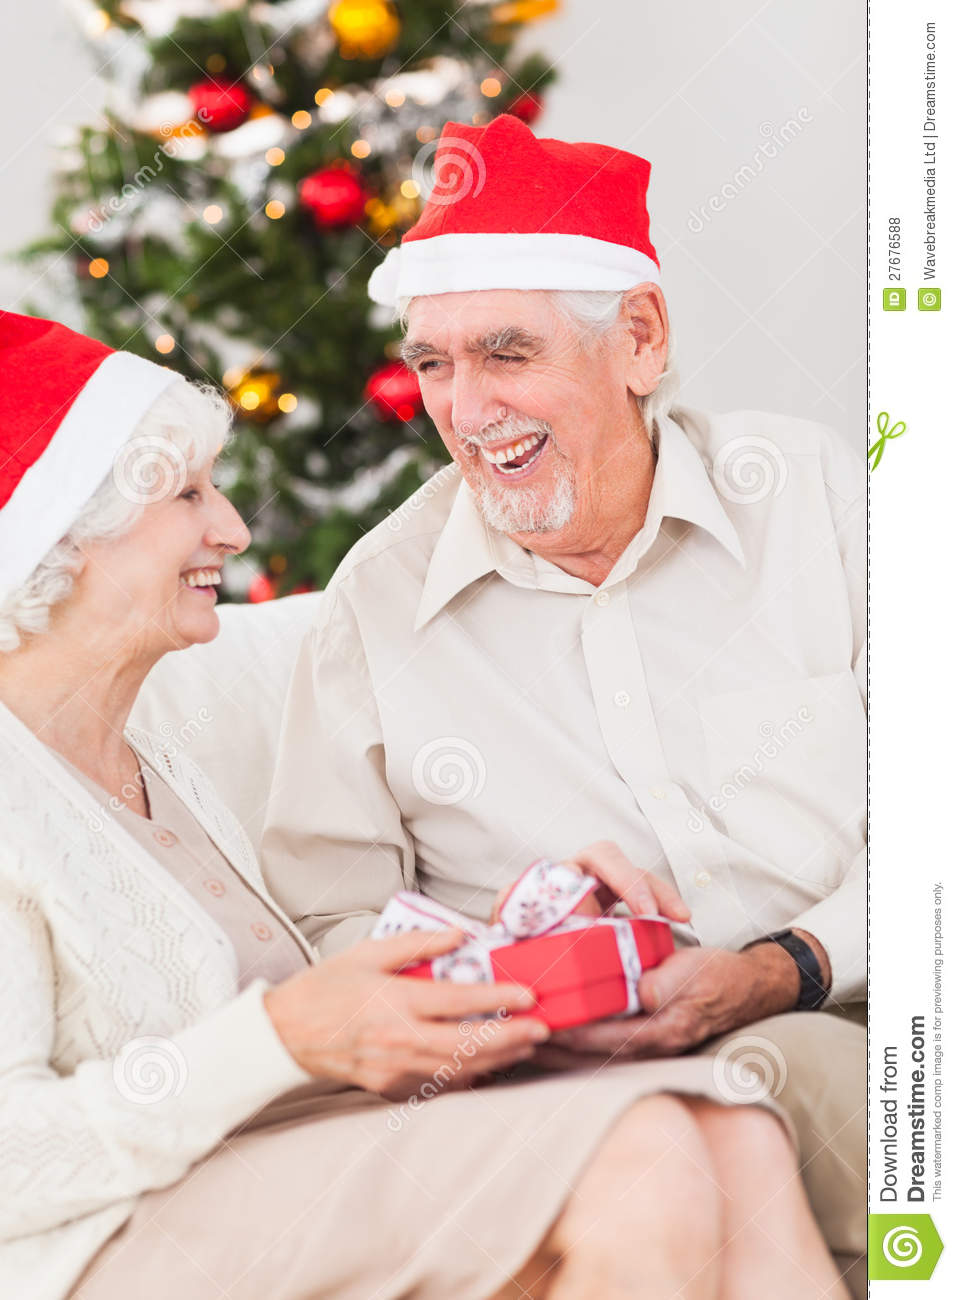 Elderly Couple Exchanging Christmas Gifts Stock Photo ...